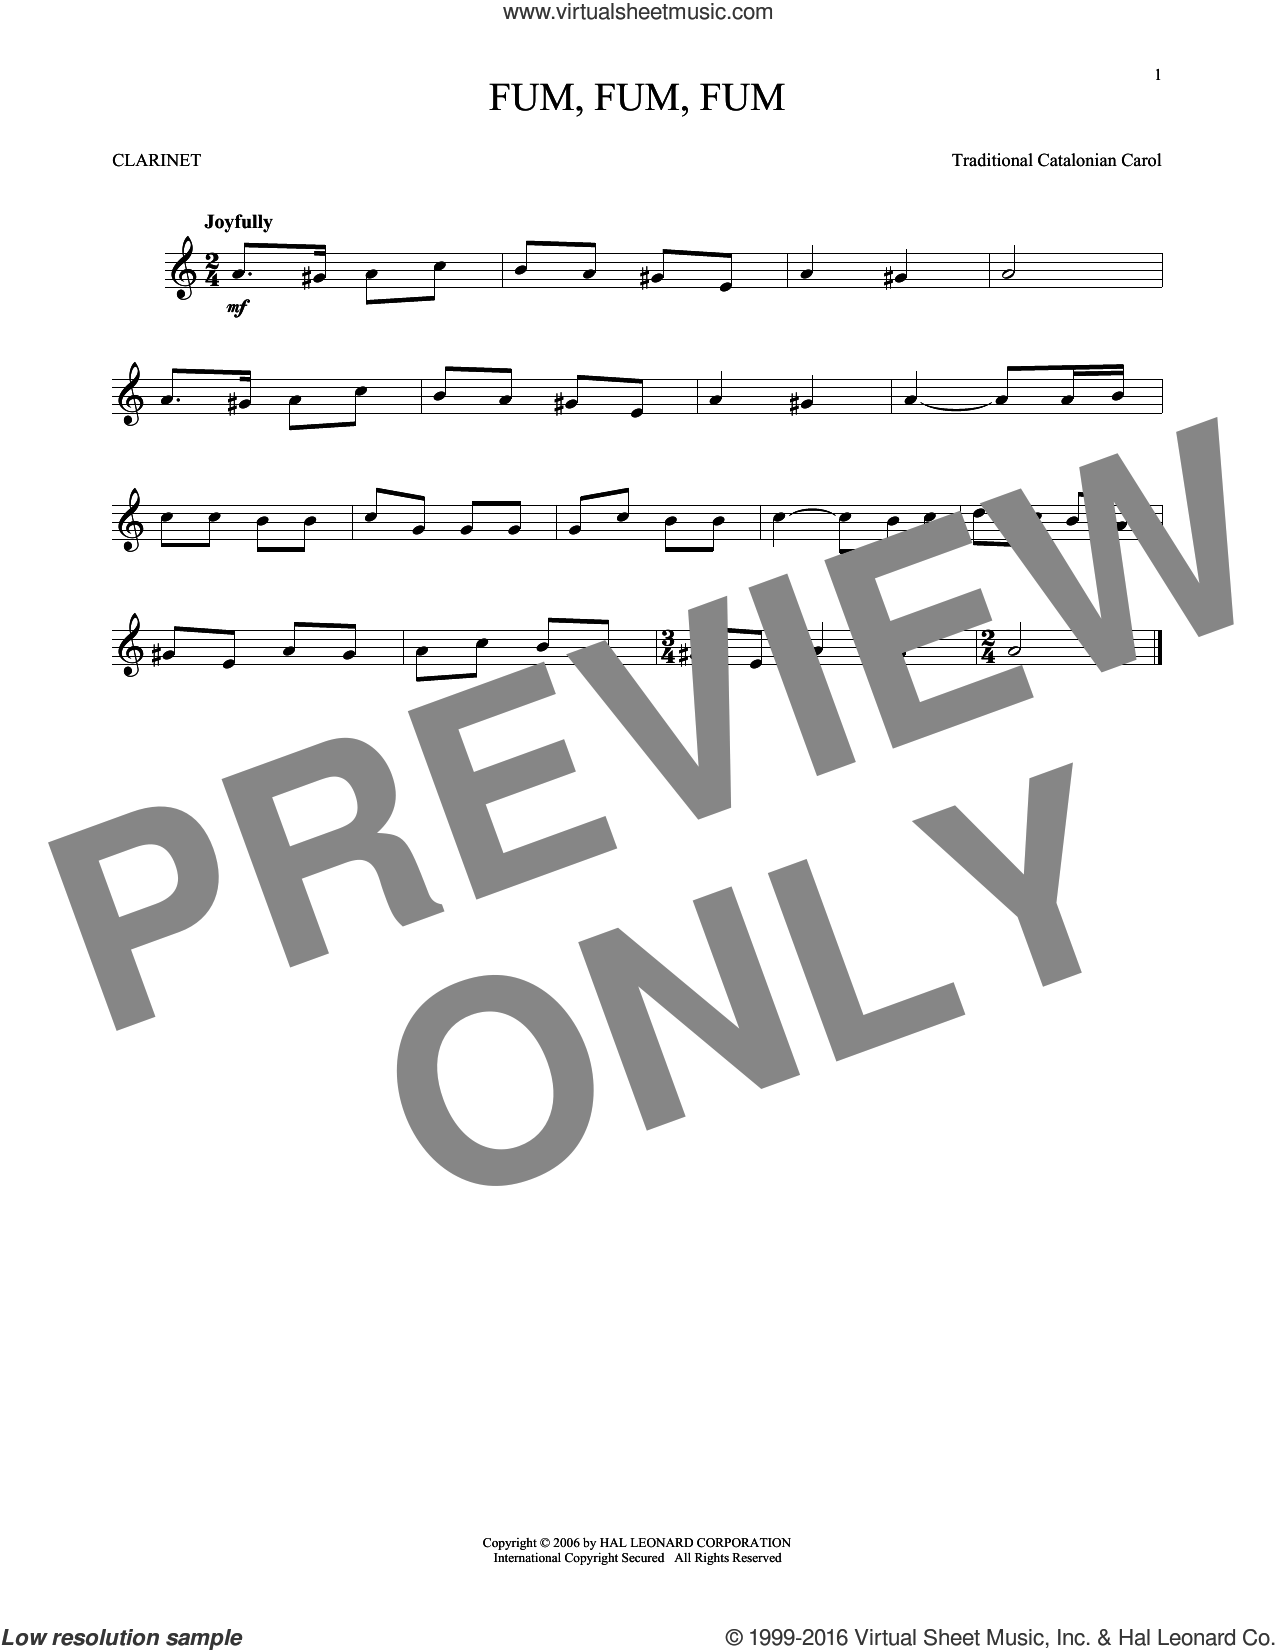 Fum, Fum, Fum sheet music for clarinet solo, intermediate skill level